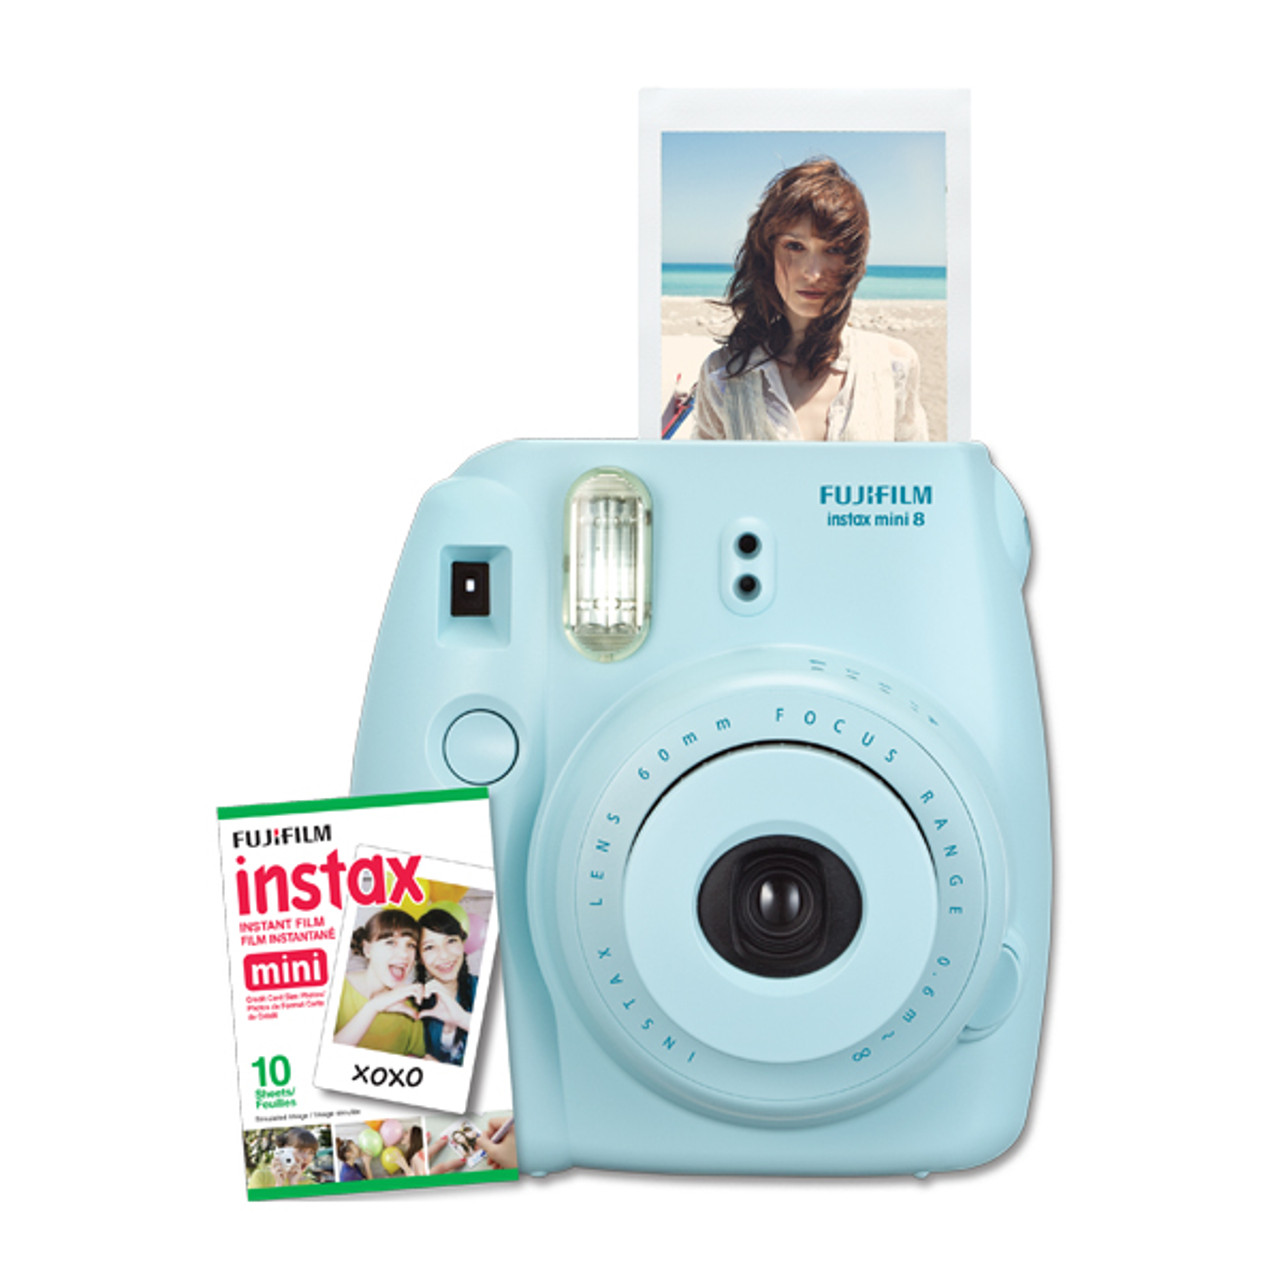 Fujifilm Instax Mini 8 w/10 Exposure Film - Blue